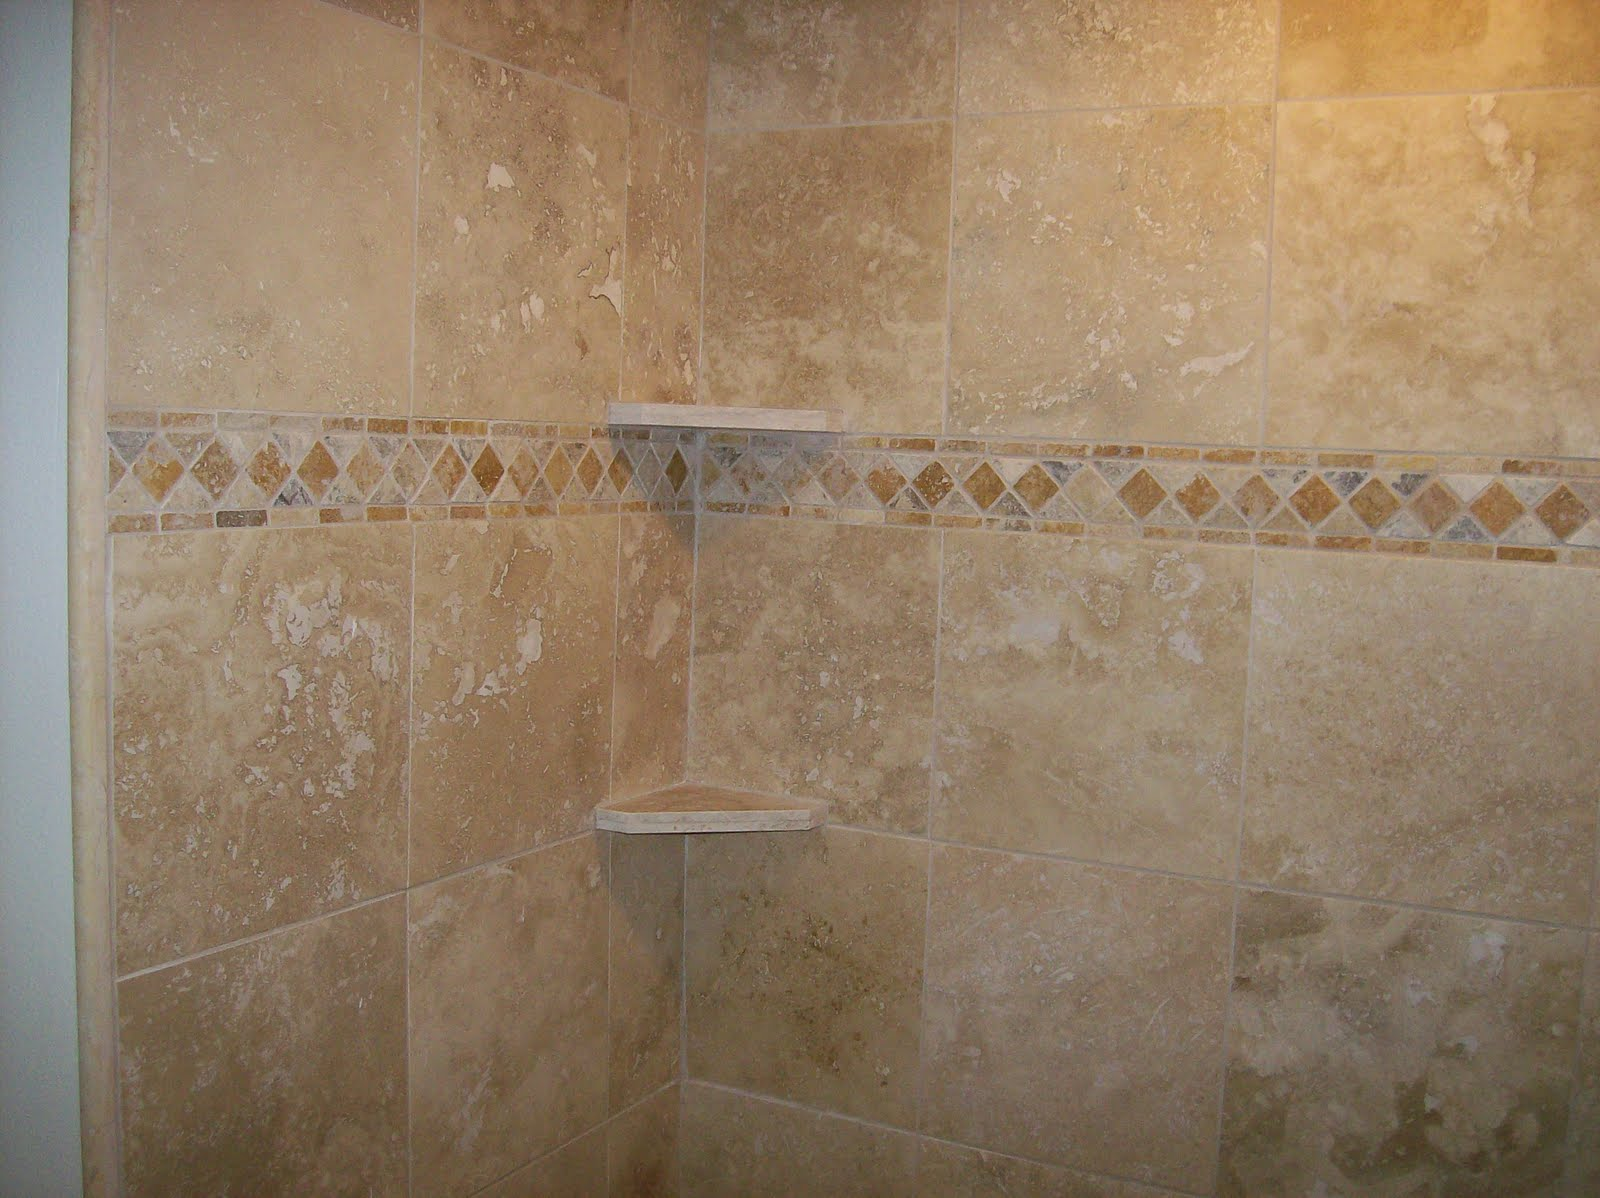 19 Pictures About Is Travertine Tile Good For Bathroom